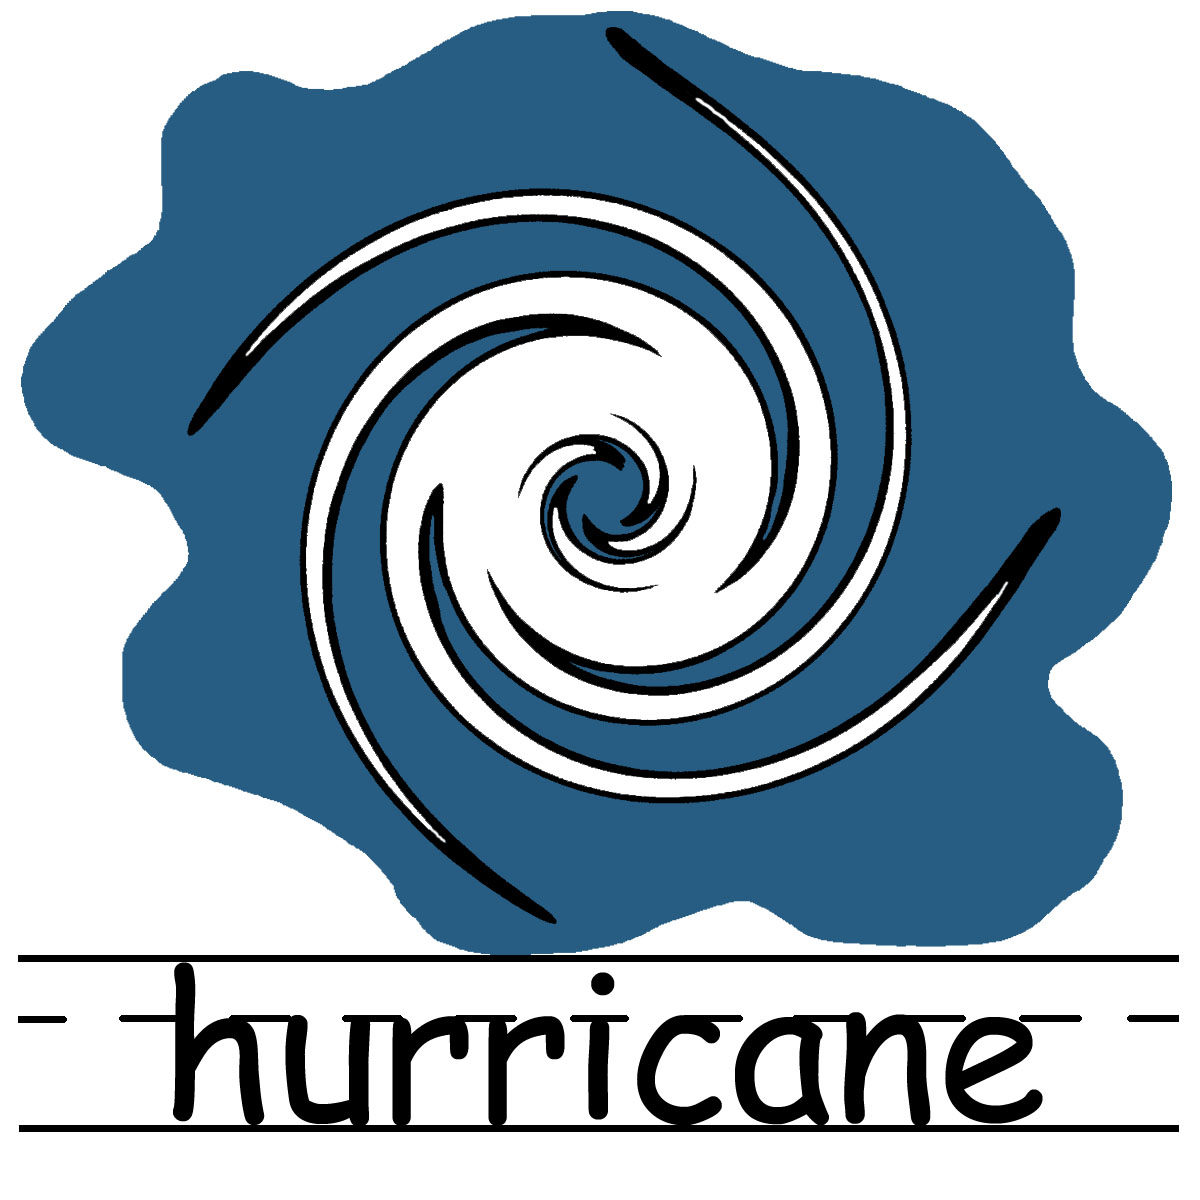 Hurricane Symbol Png 42361 Free Icons And Png Backgrounds